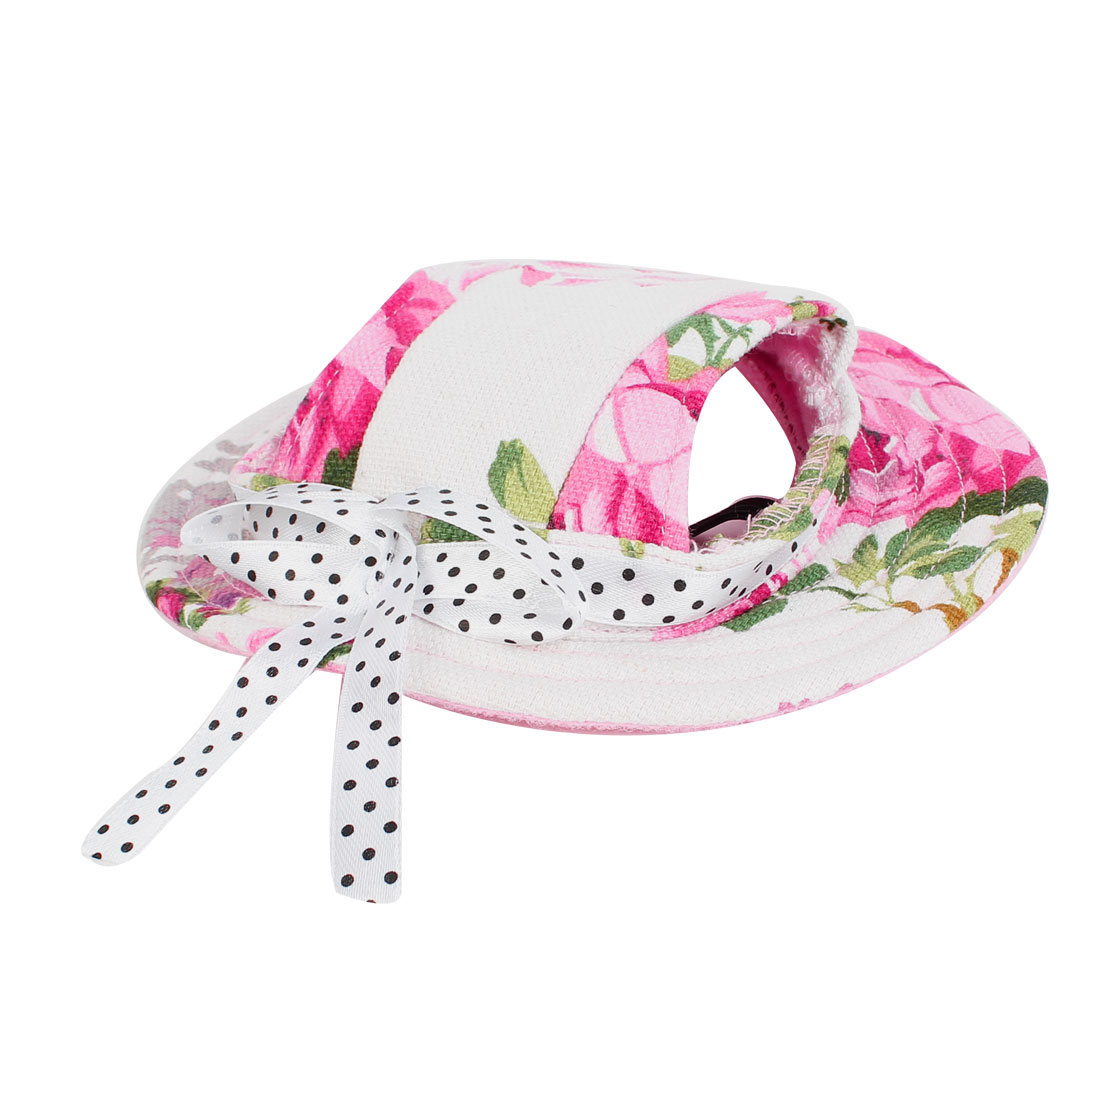 Flower Pattern Bowtie Detail Round Brim Pet Dog Doggy Fedora Cap Visor Hat White Pink Green